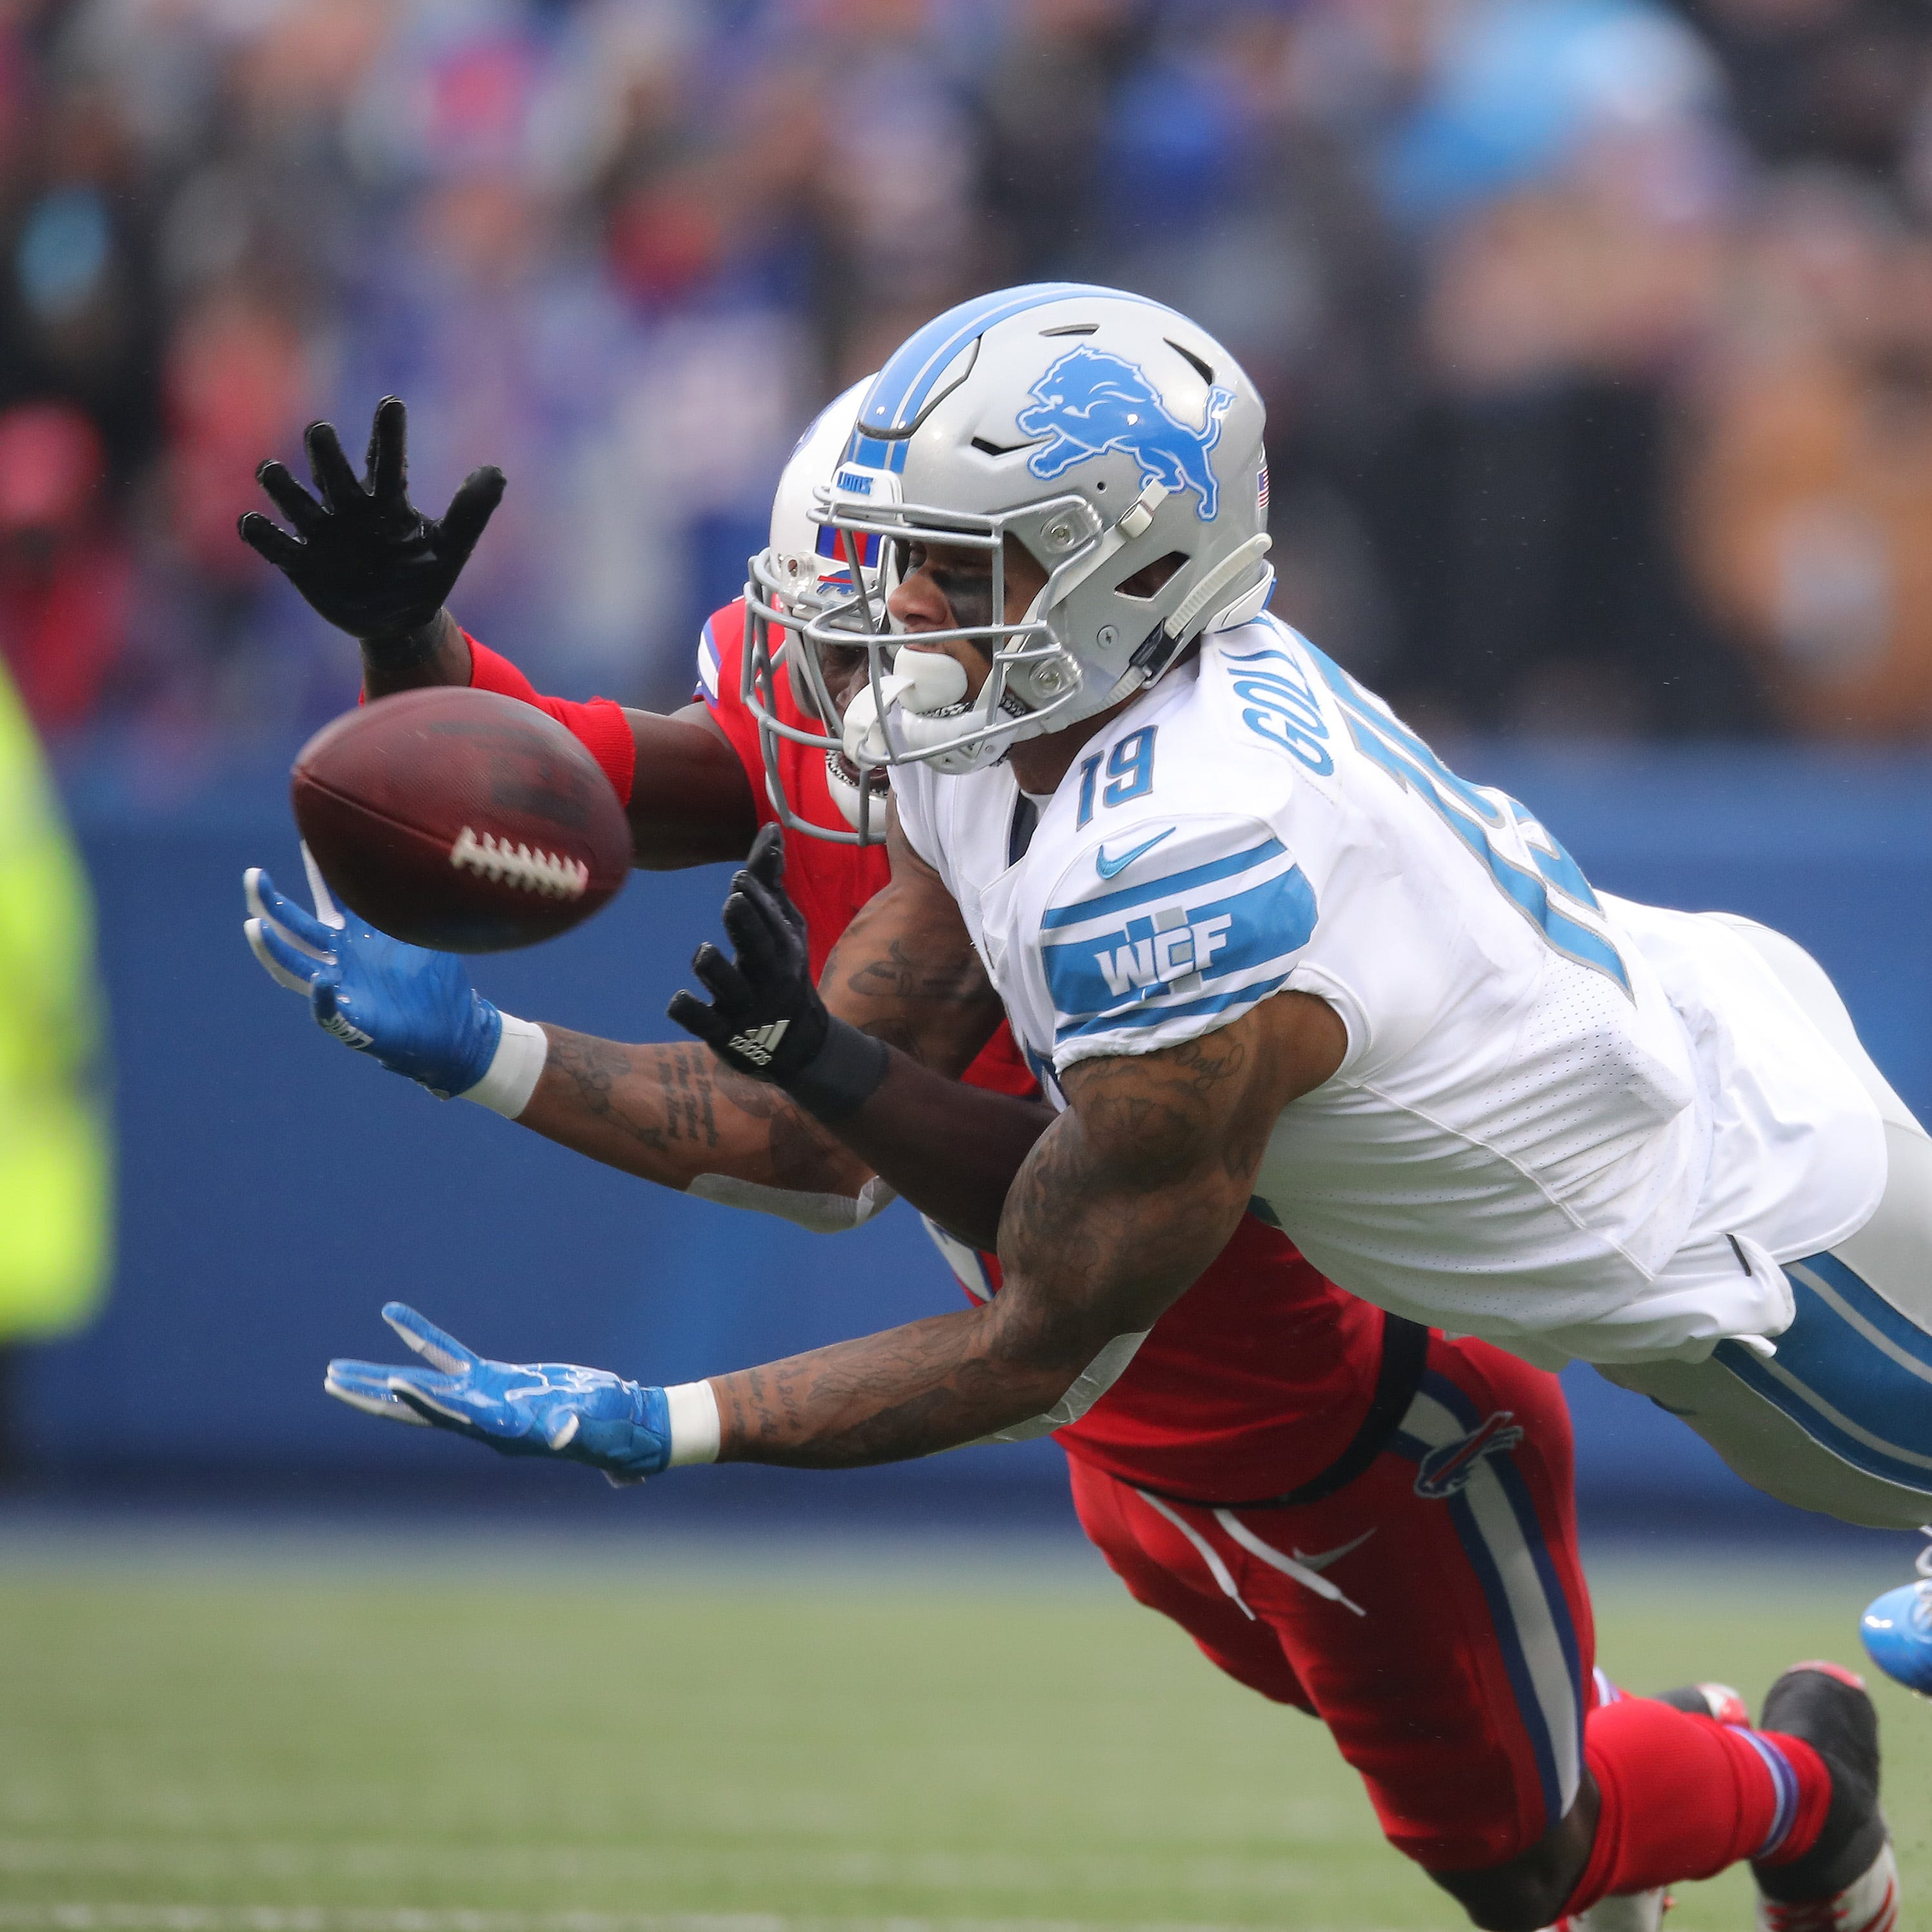 'The sky is the limit': Lions' Golladay emerging as true No. 1 receiver